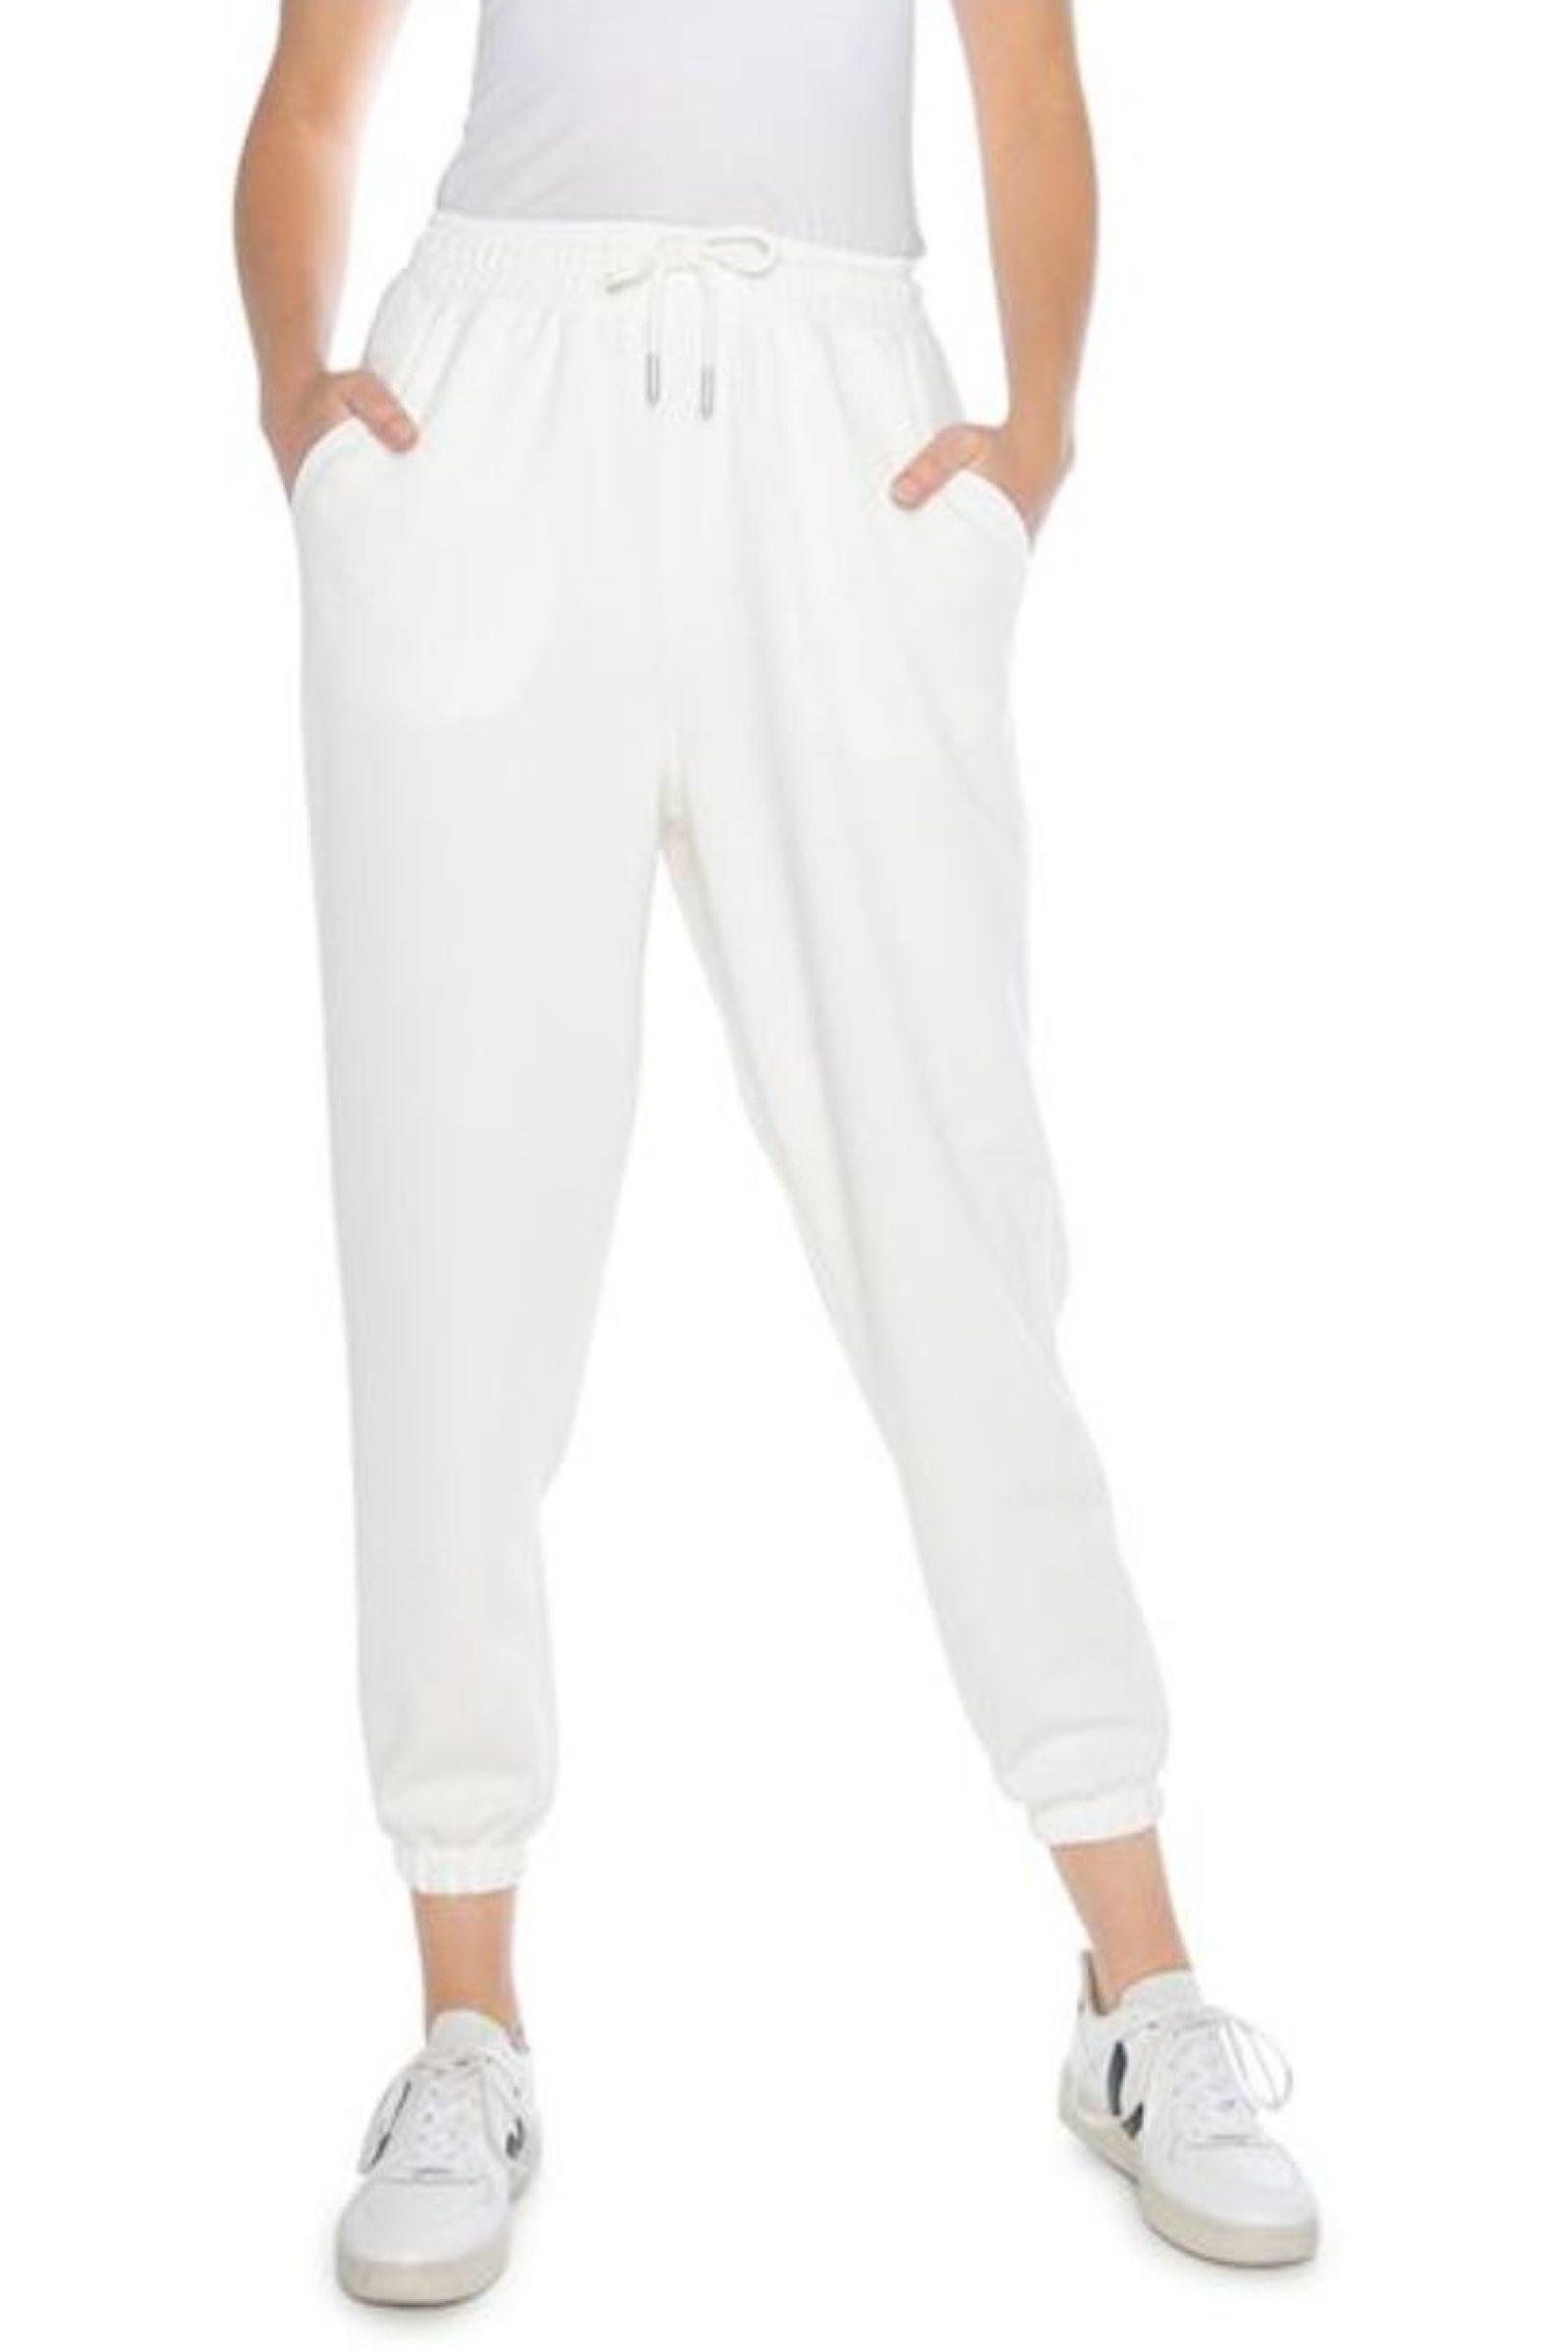 ONLY | Trousers | 15210680Cloud Dancer